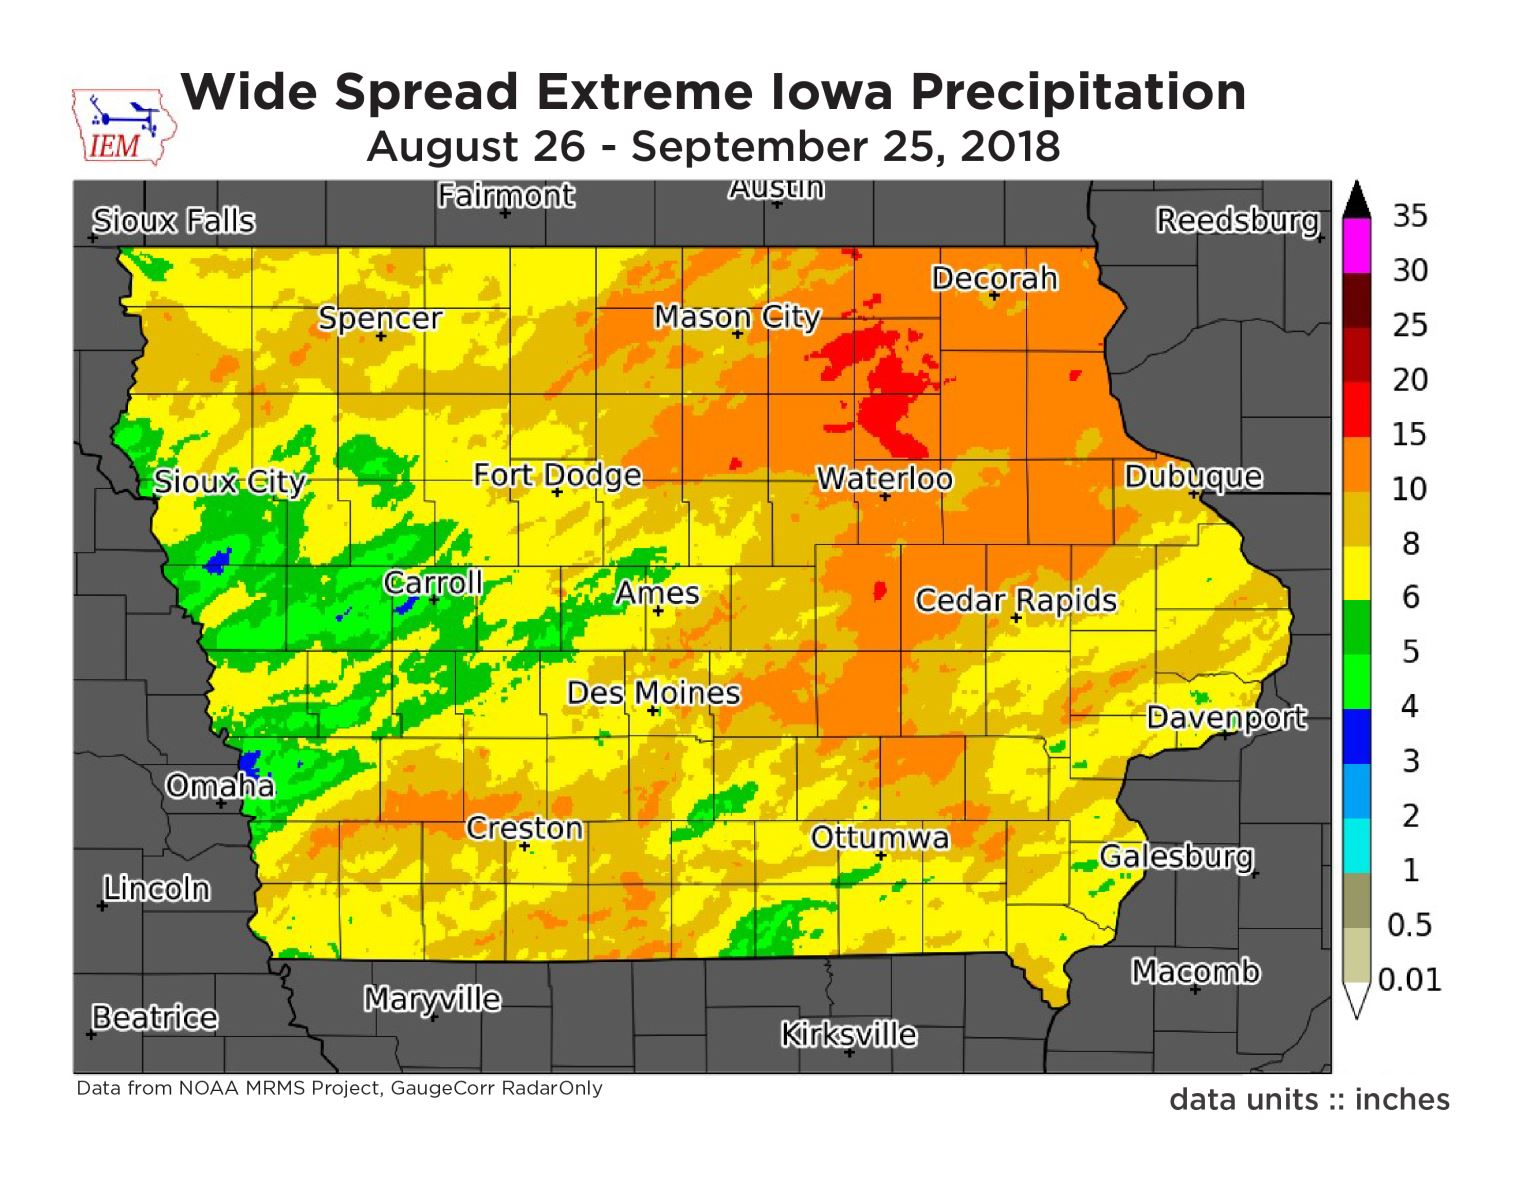 IEC joins call for planning and preparation as extreme weather intensifies in Iowa